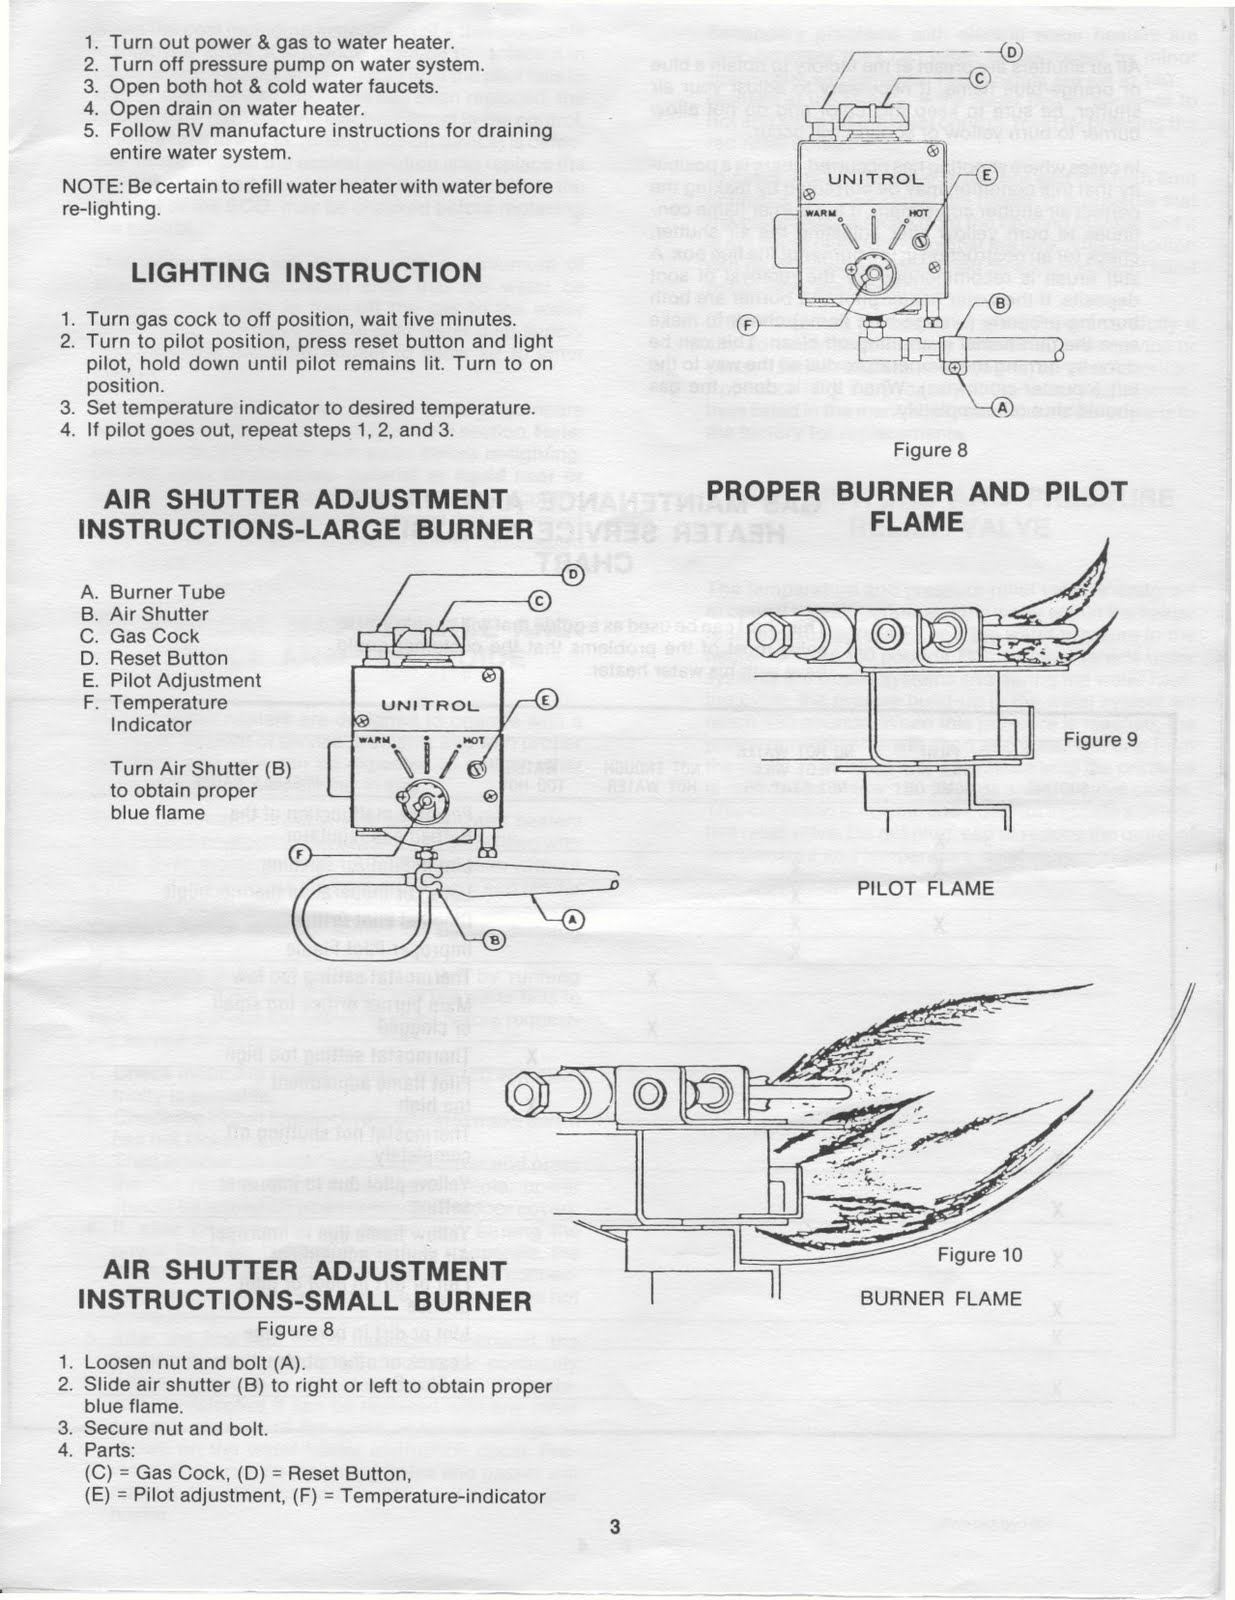 wy_9795] fleetwood providence wiring diagram free picture  aryon hist salv mohammedshrine librar wiring 101